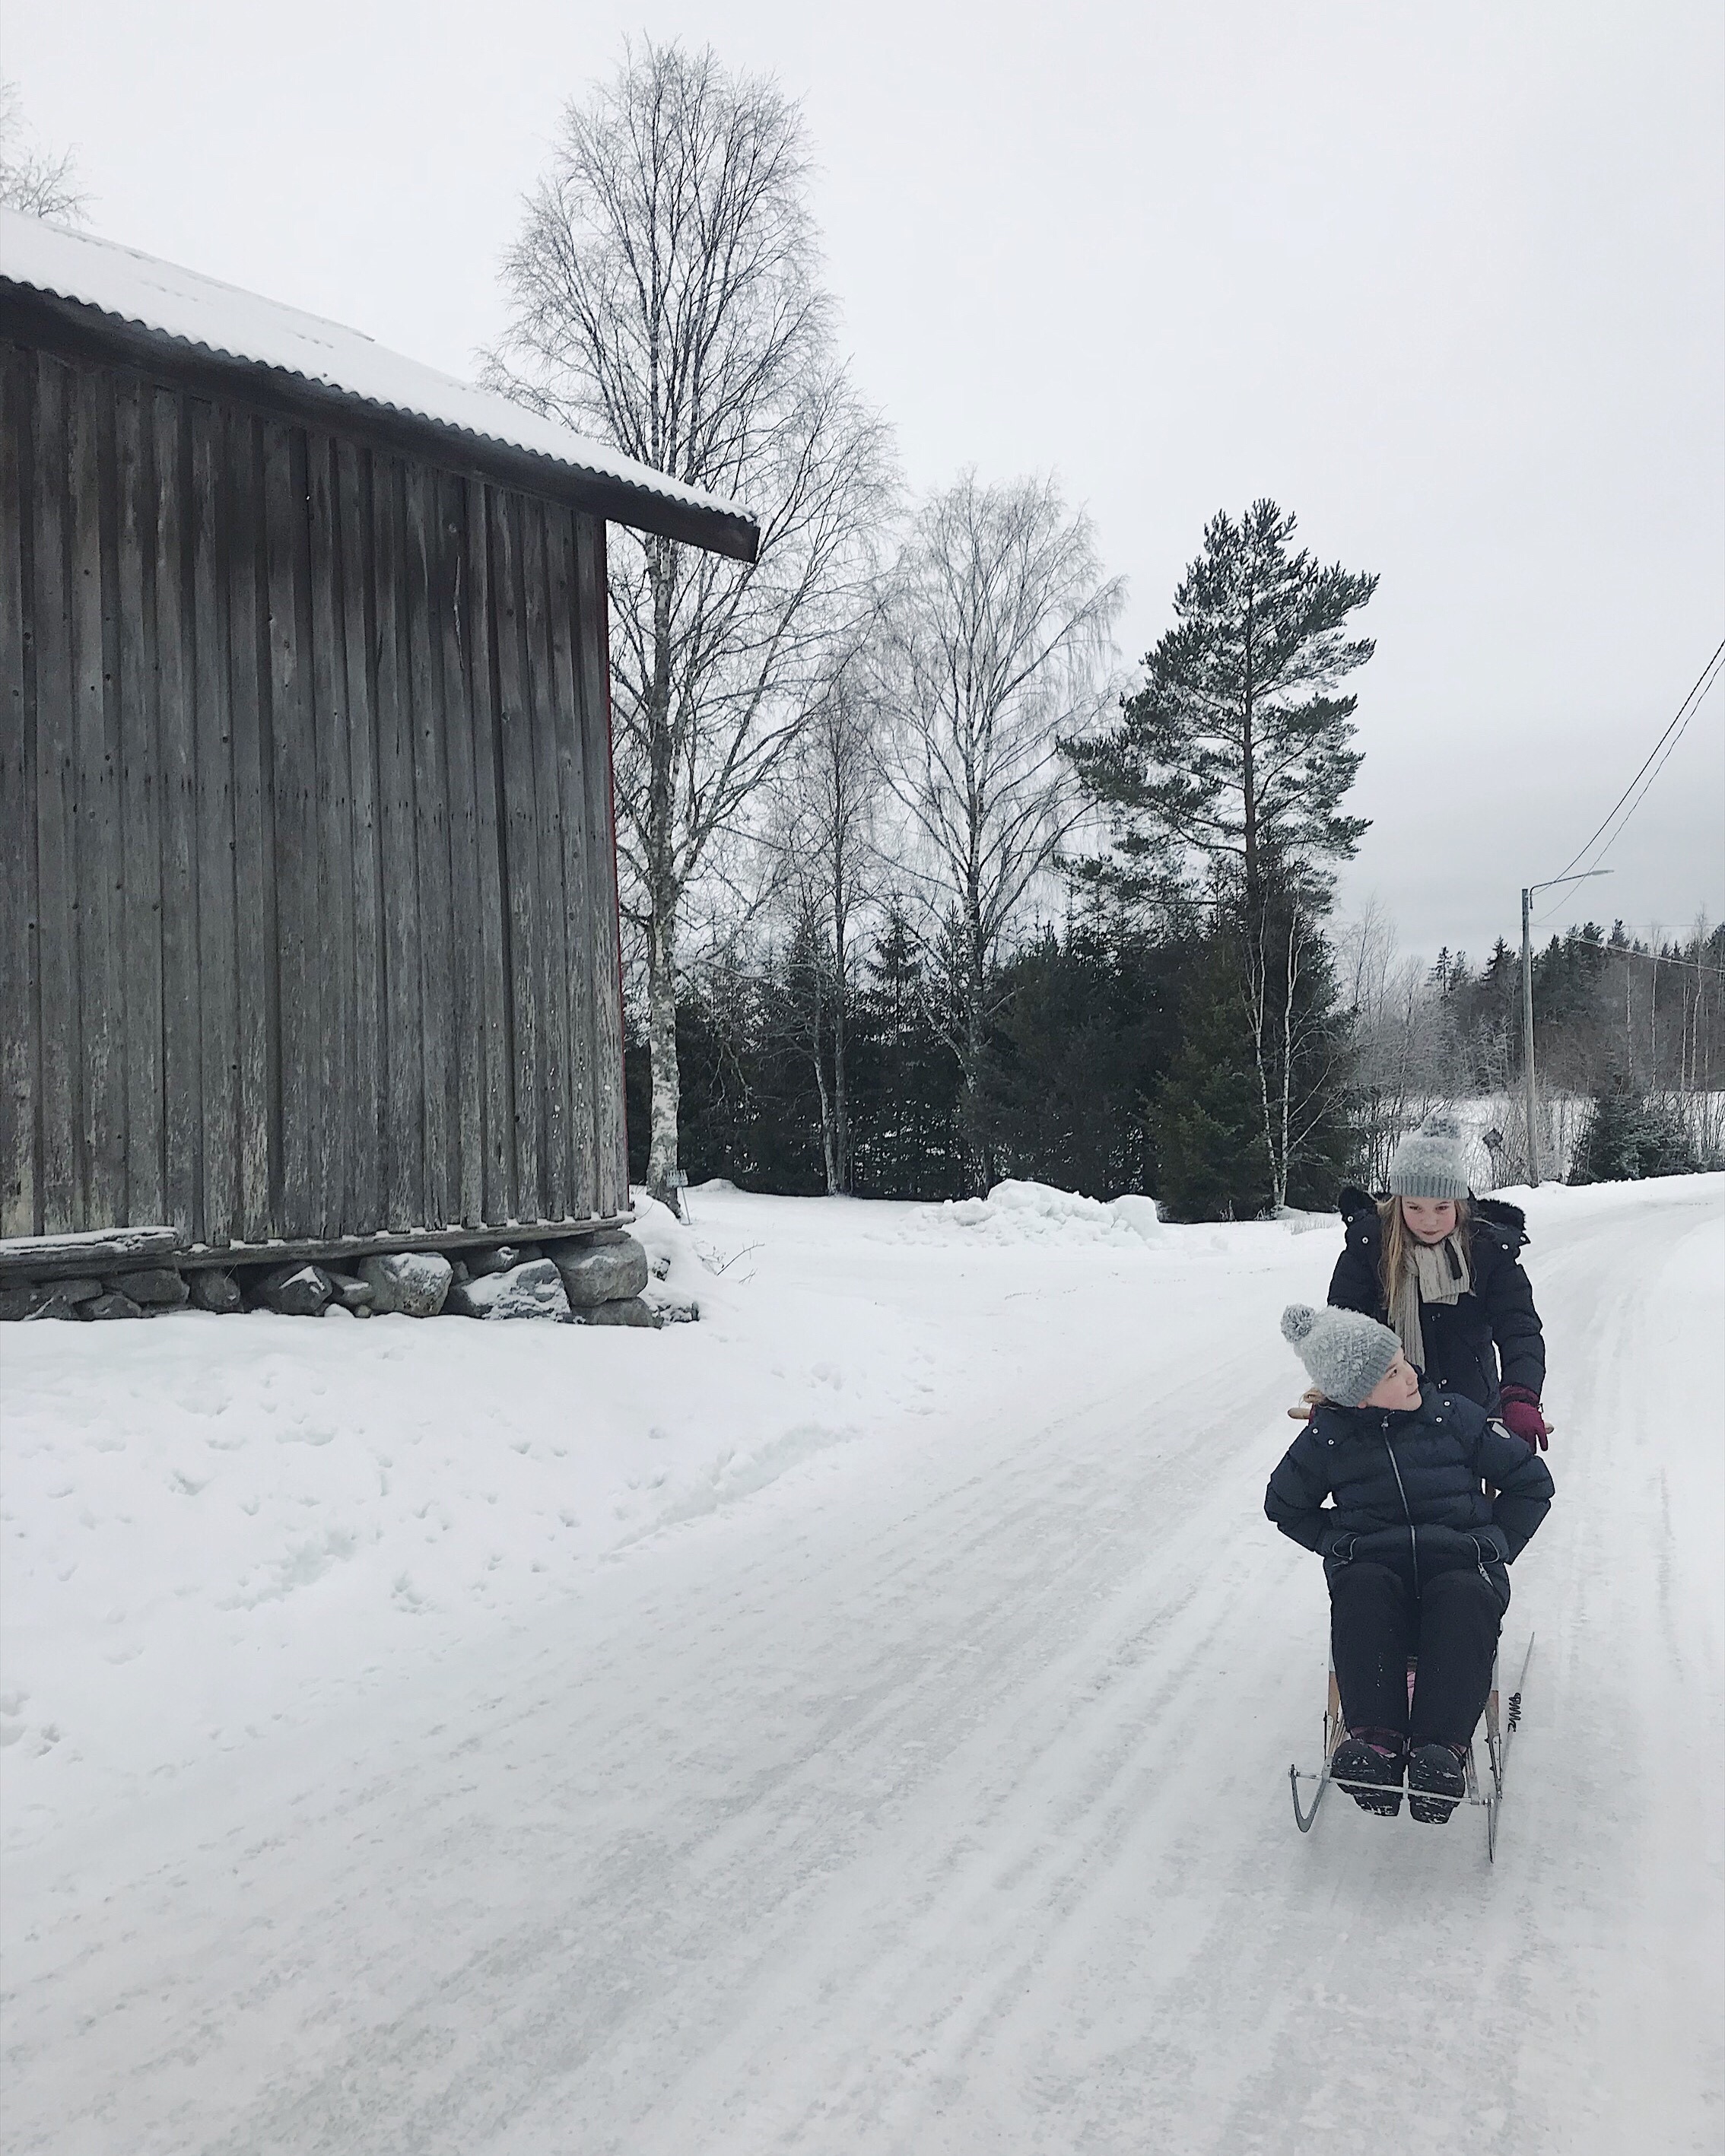 Winter weekend in Dalarna